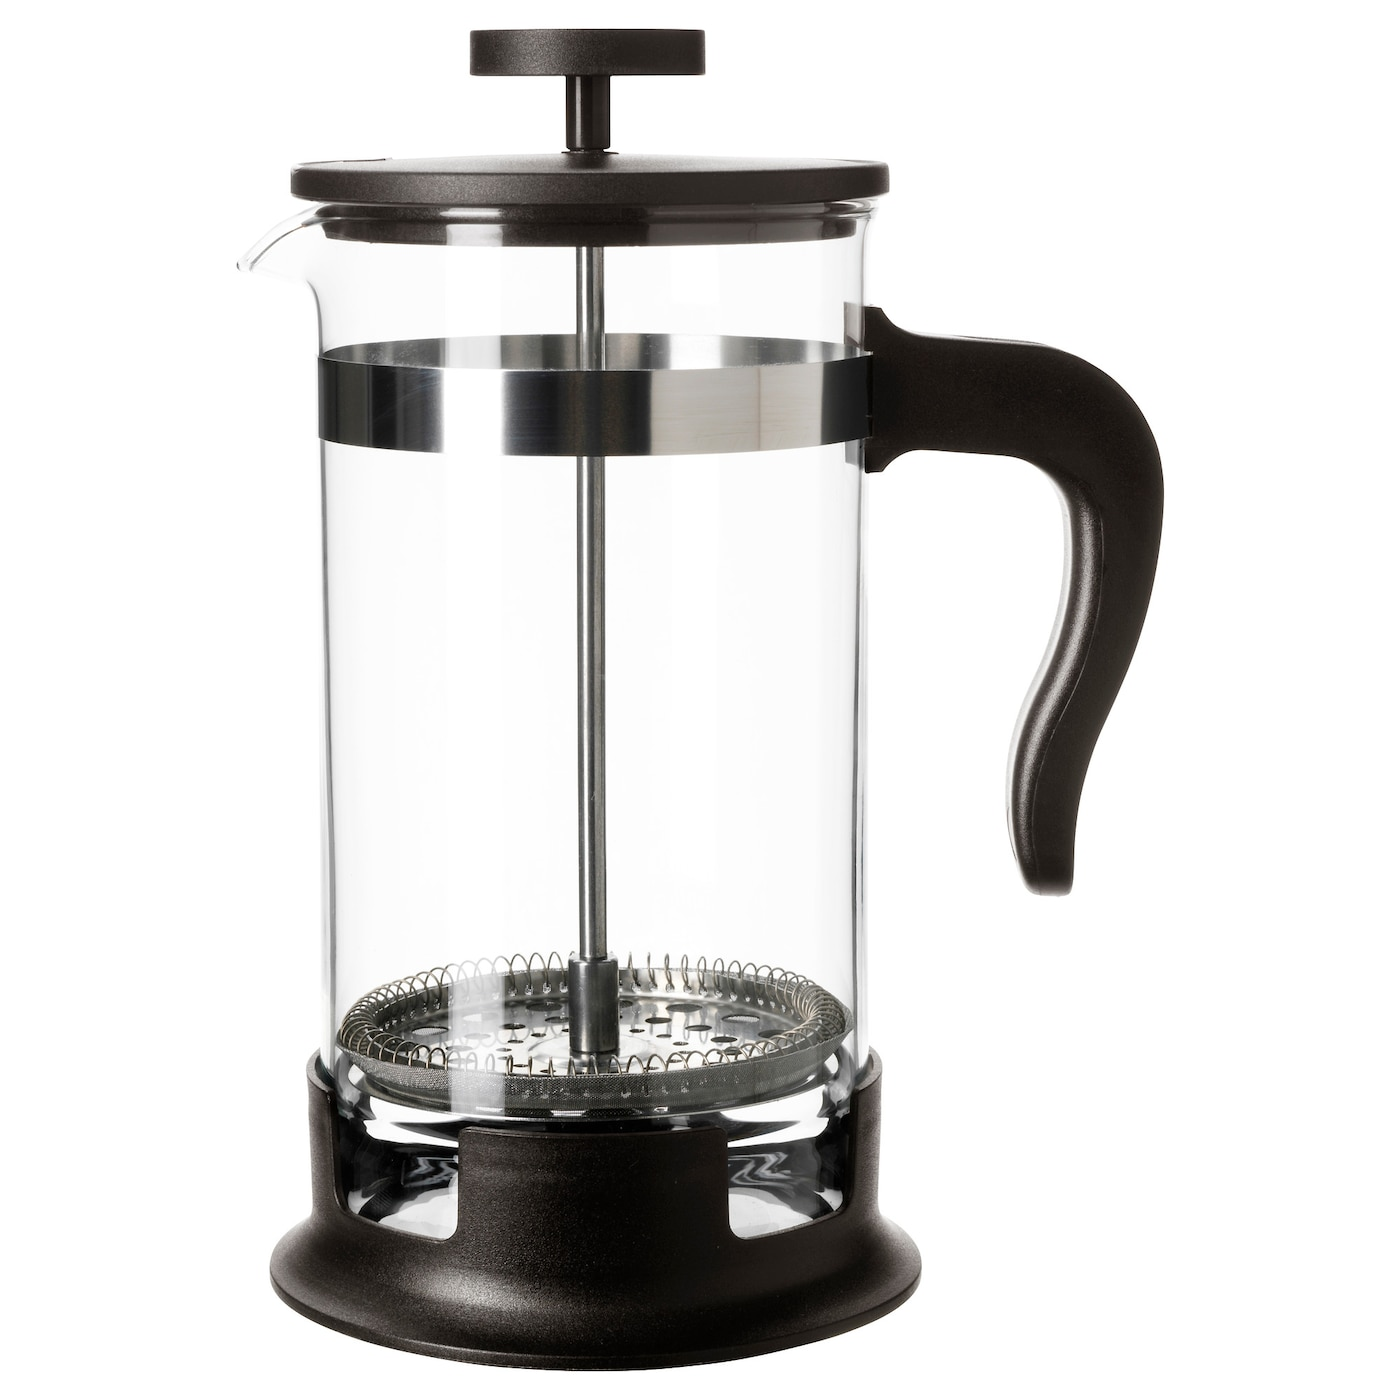 glass coffee maker upphetta coffee tea maker glass stainless steel 1 l ikea 29294